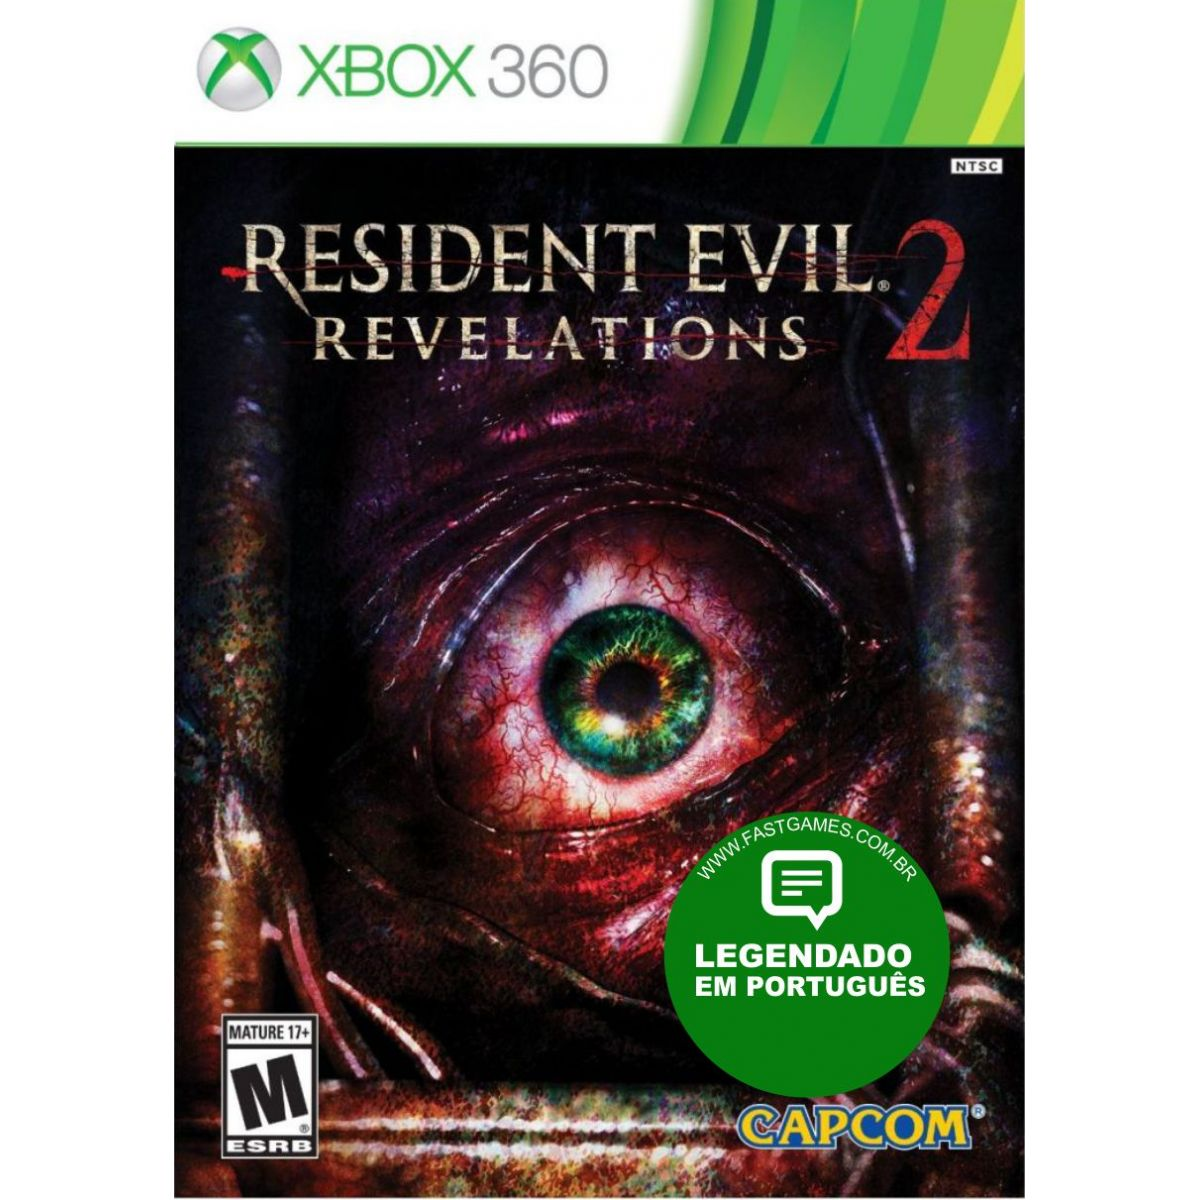 Resident Evil: Revelations 2 - XBOX 360  - FastGames - Gamers levados a s�rio